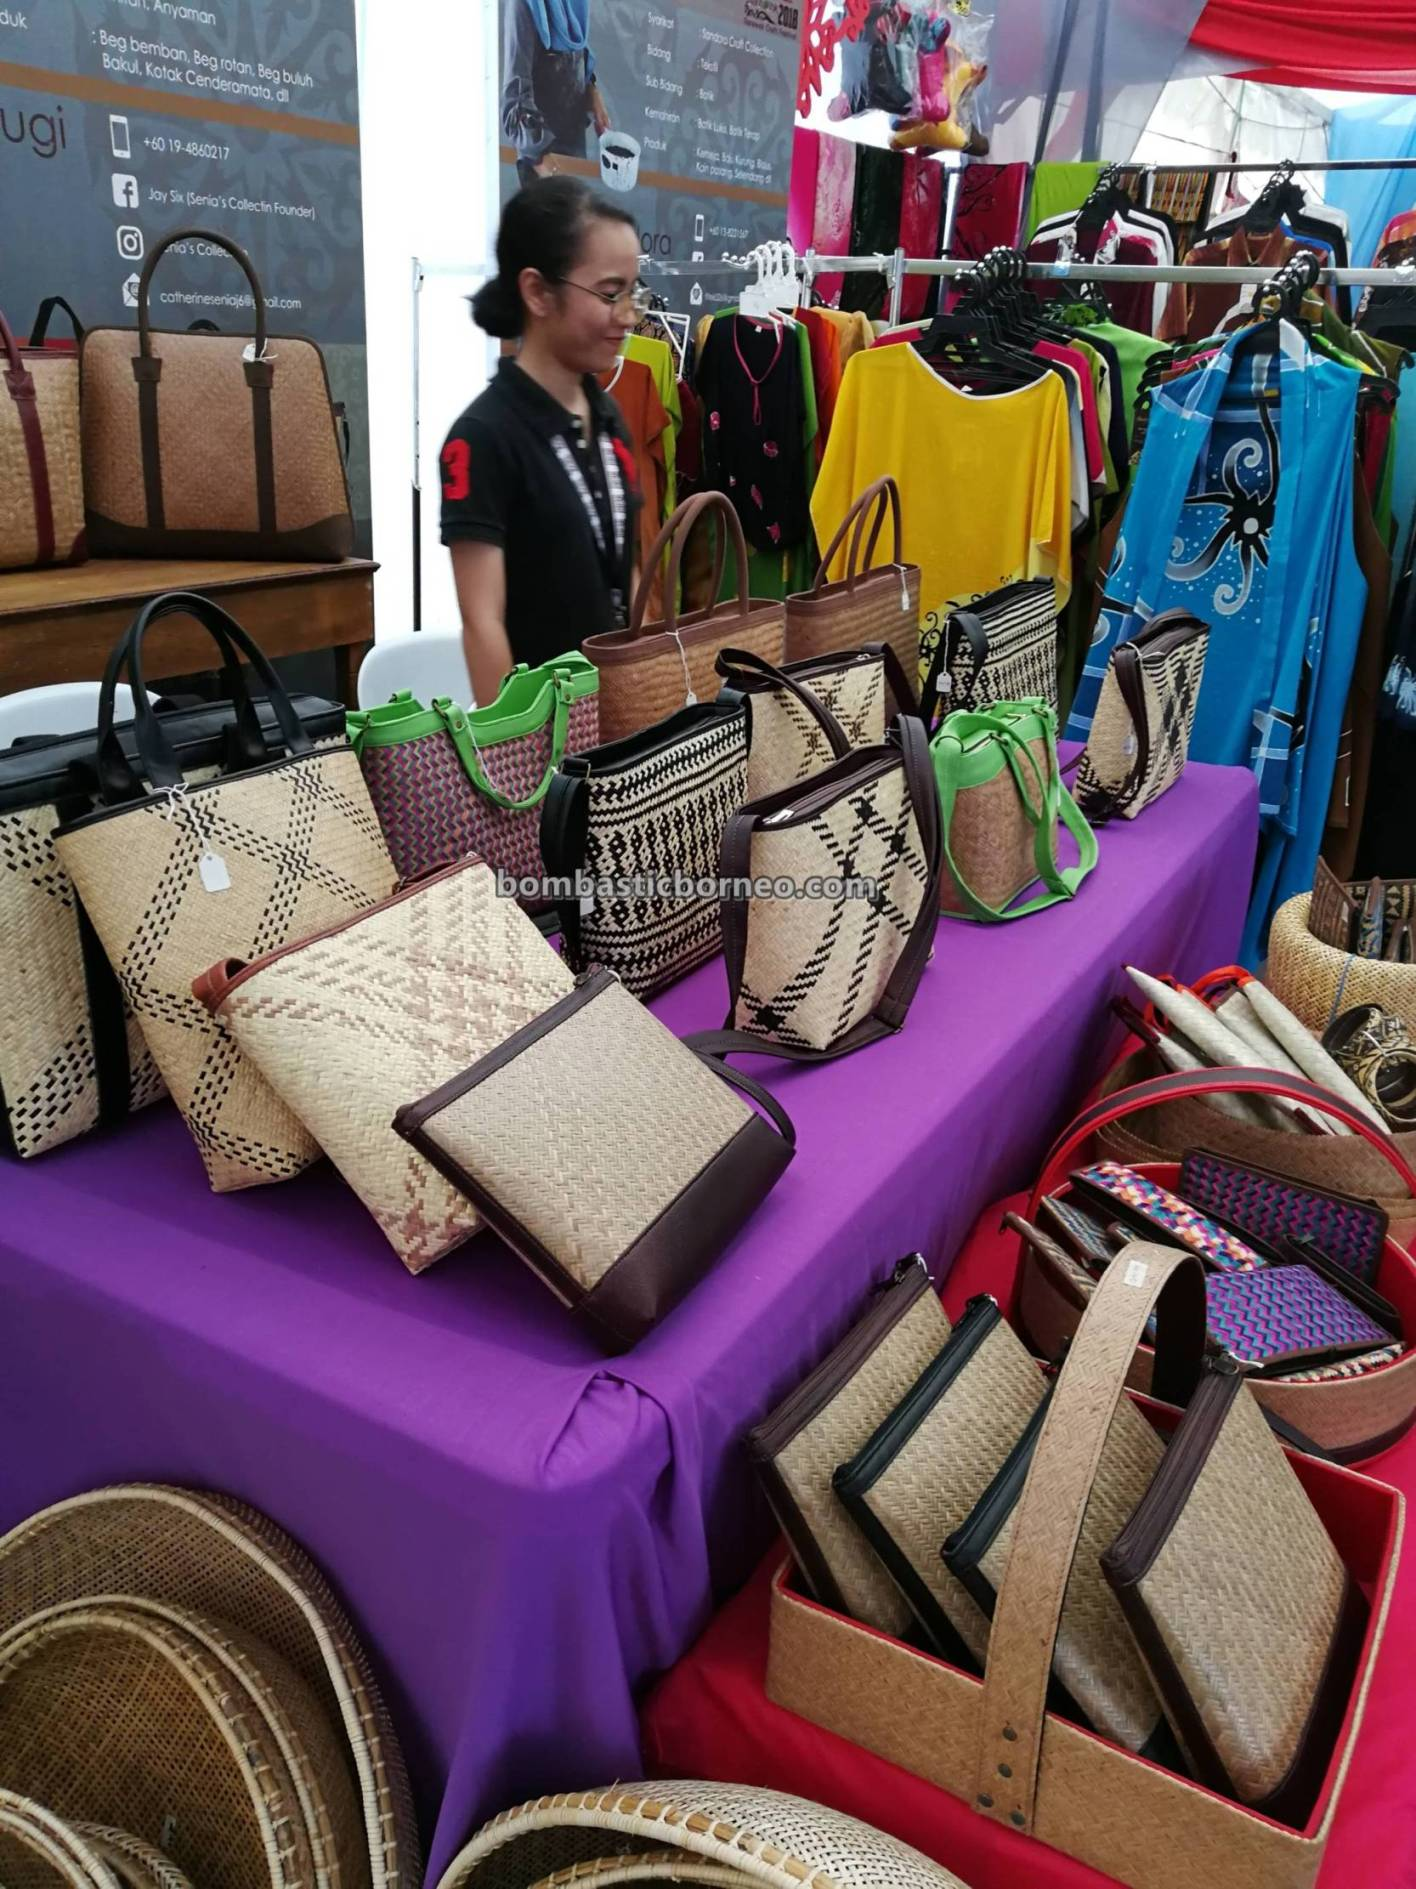 handicrafts exhibitions, event, handmade, aboriginal, native, dayak, Kraftangan, Borneo, Kuching Waterfront, Tourist attraction, travel guide, tribal, 砂拉越婆罗洲, 原住民手工艺品展览,